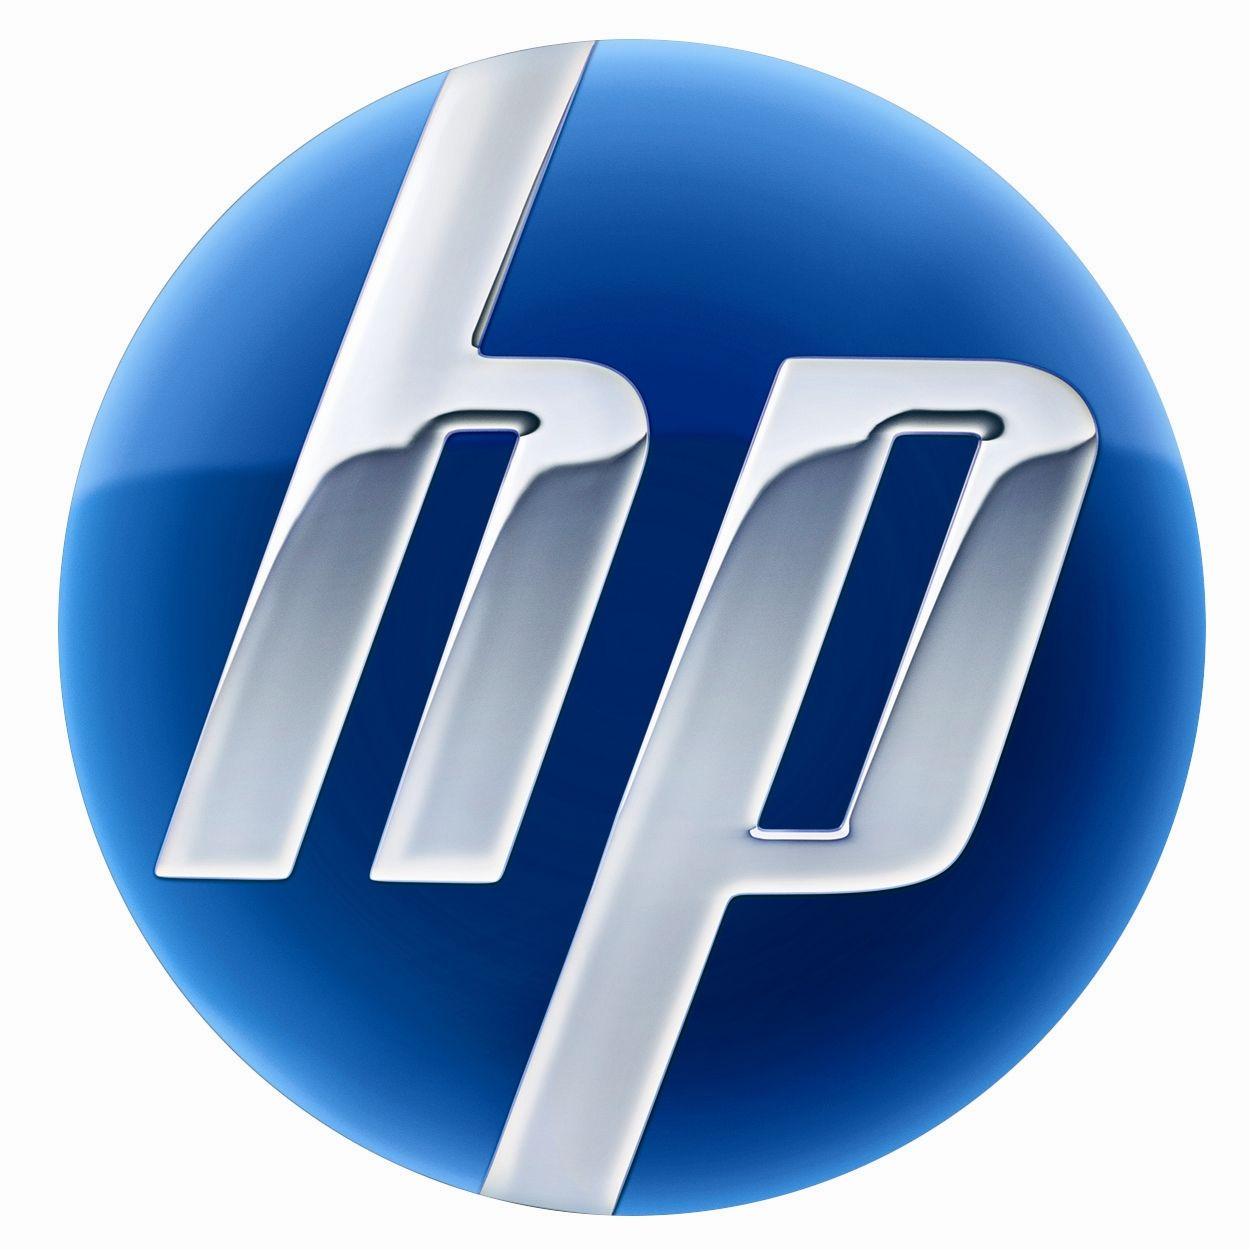 hp logo google search candice s personal brand collage Sports Clothing and Apparel Logos Clothing Logos and Names List